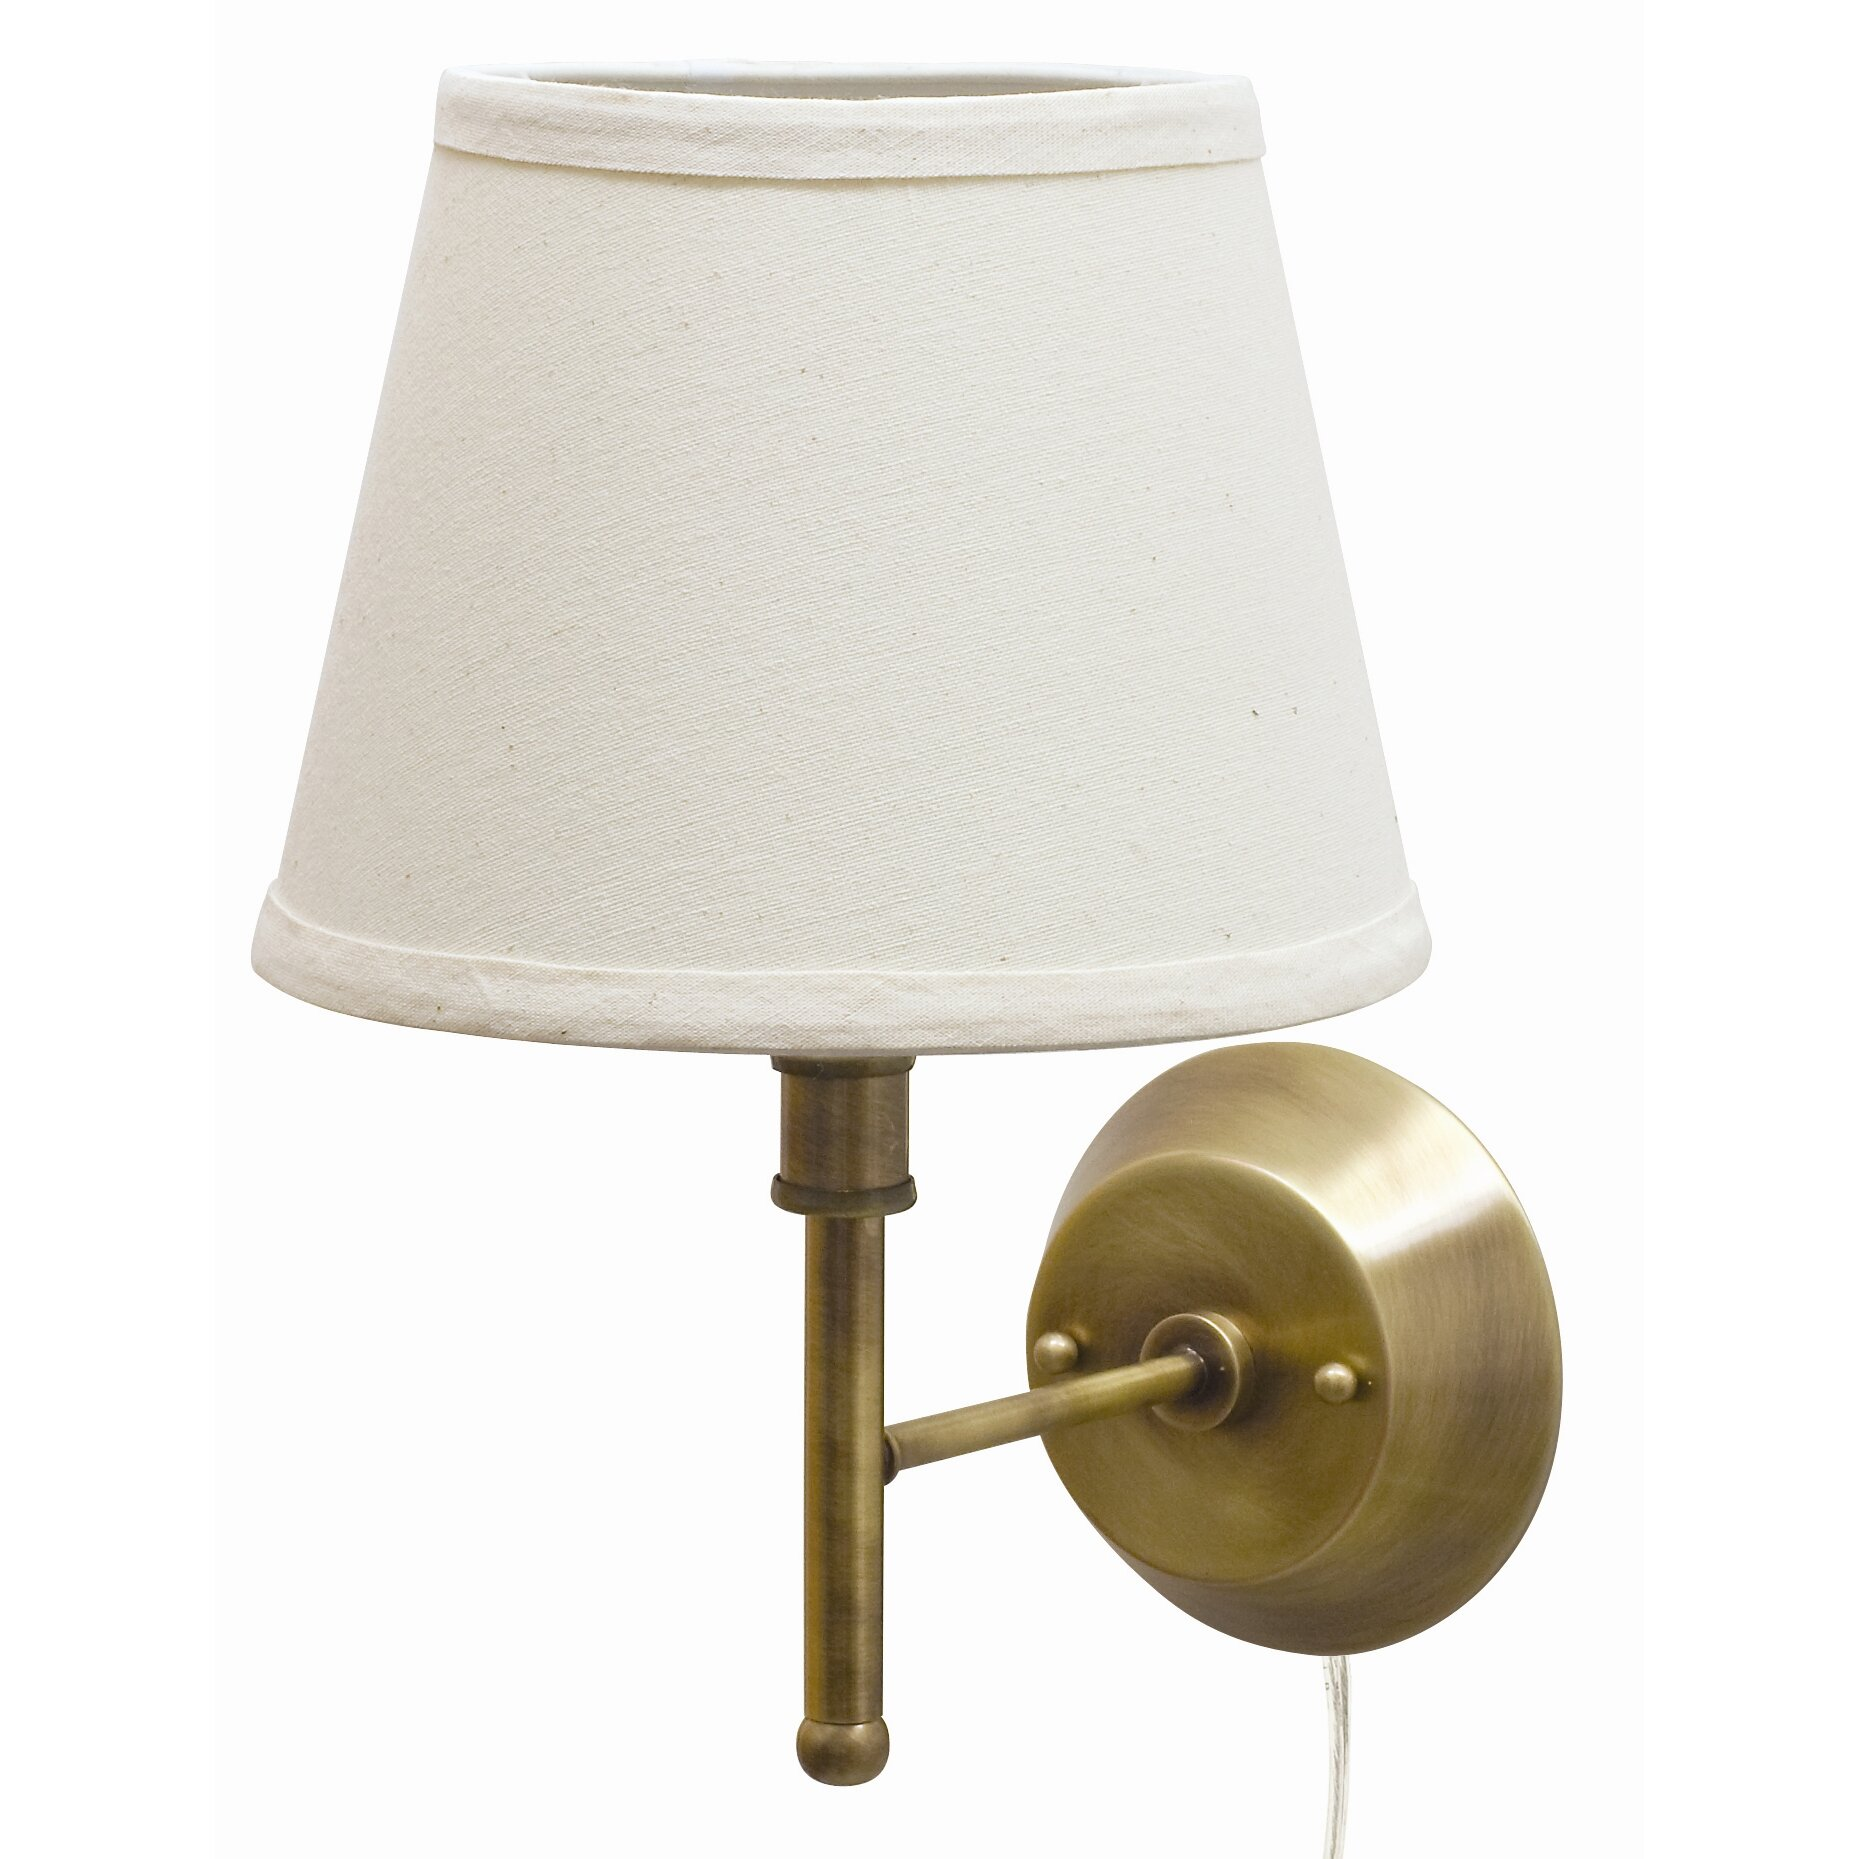 house of troy greensboro 13 pin up wall lamp reviews wayfair. Black Bedroom Furniture Sets. Home Design Ideas